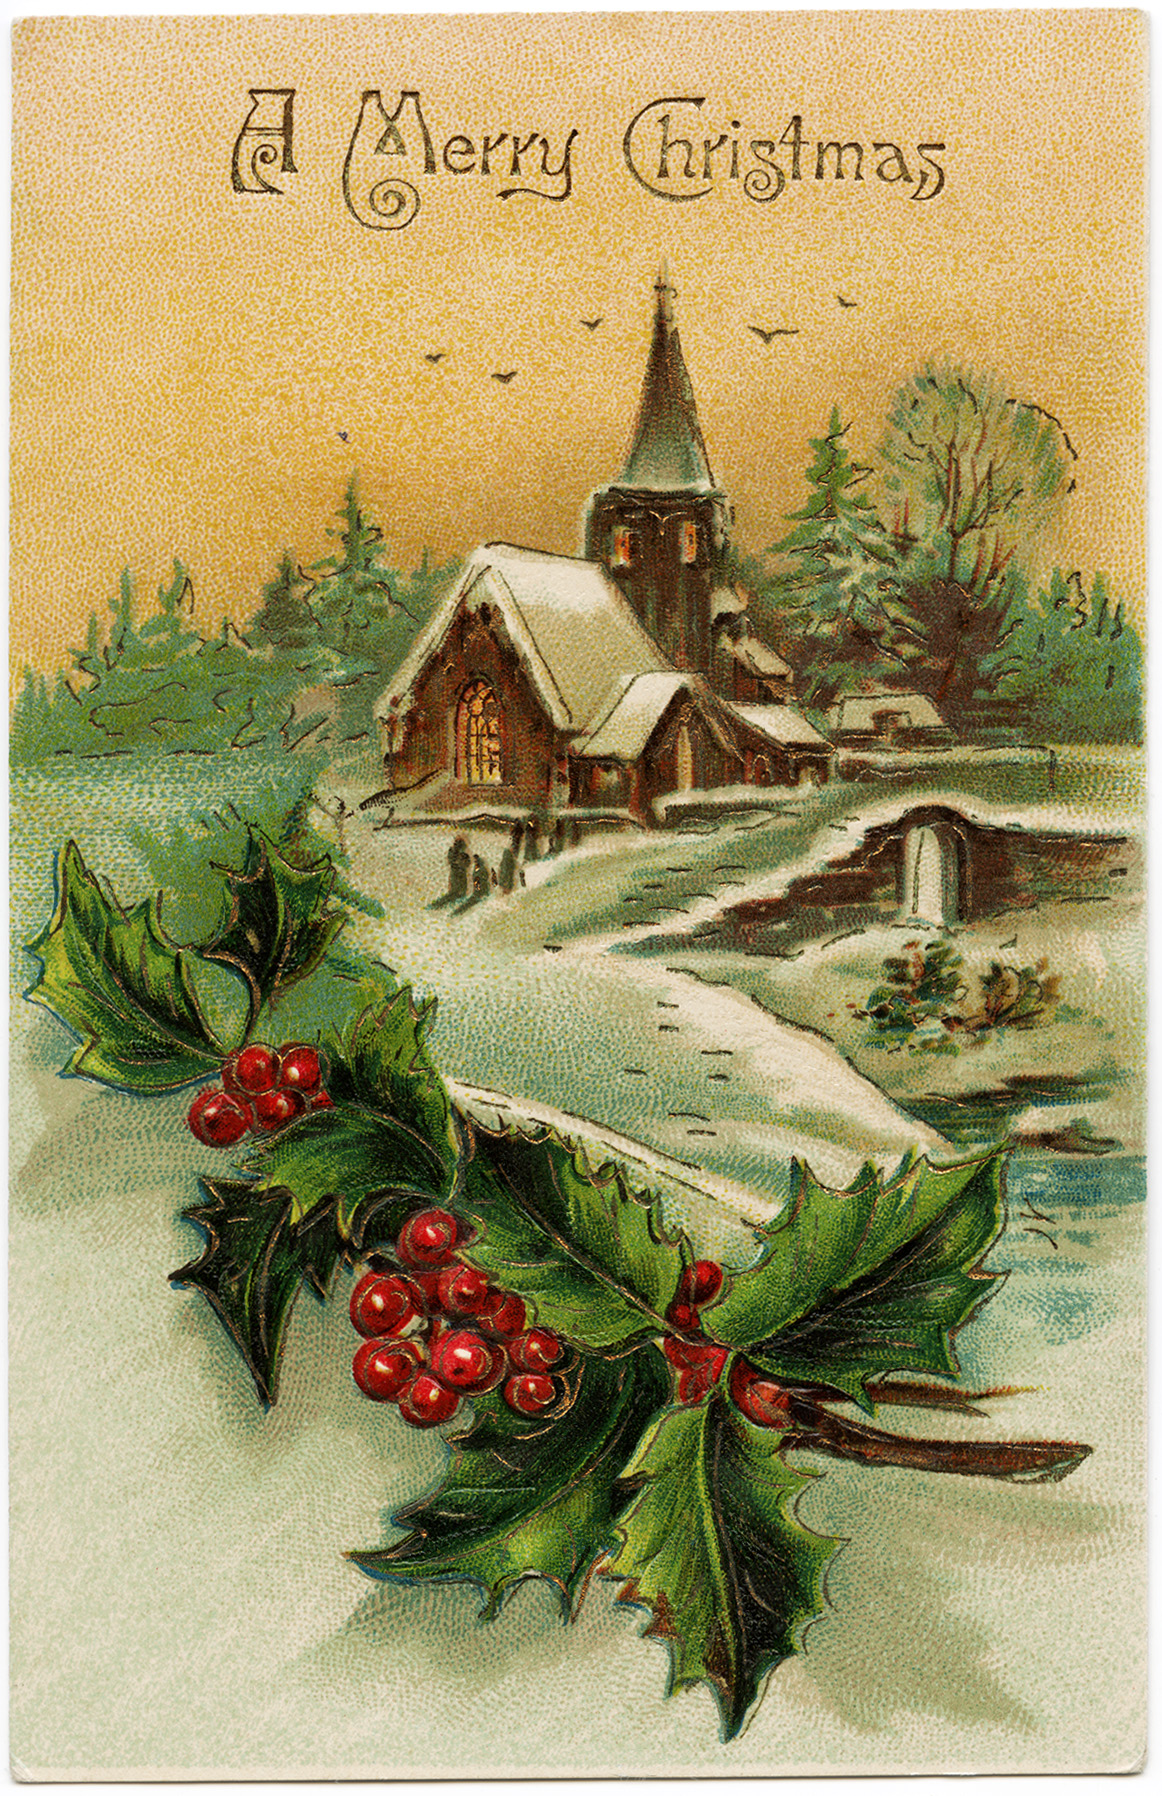 Free printable vintage christmas cards - Made In Germany Christmas Card Old Fashioned Christmas Pinterest Vintage Christmas